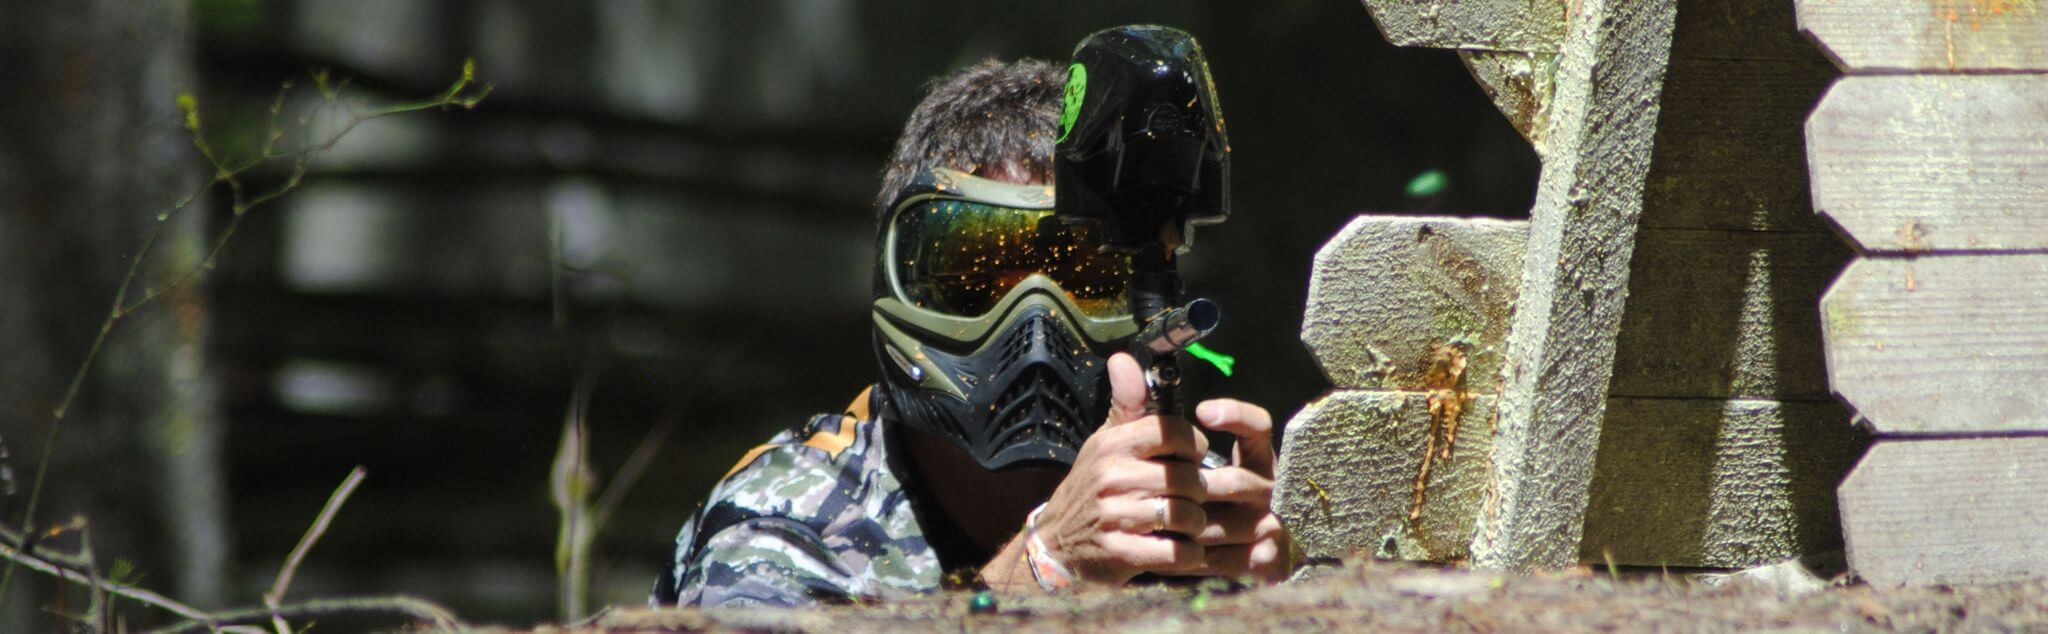 Paintball in Ballymena